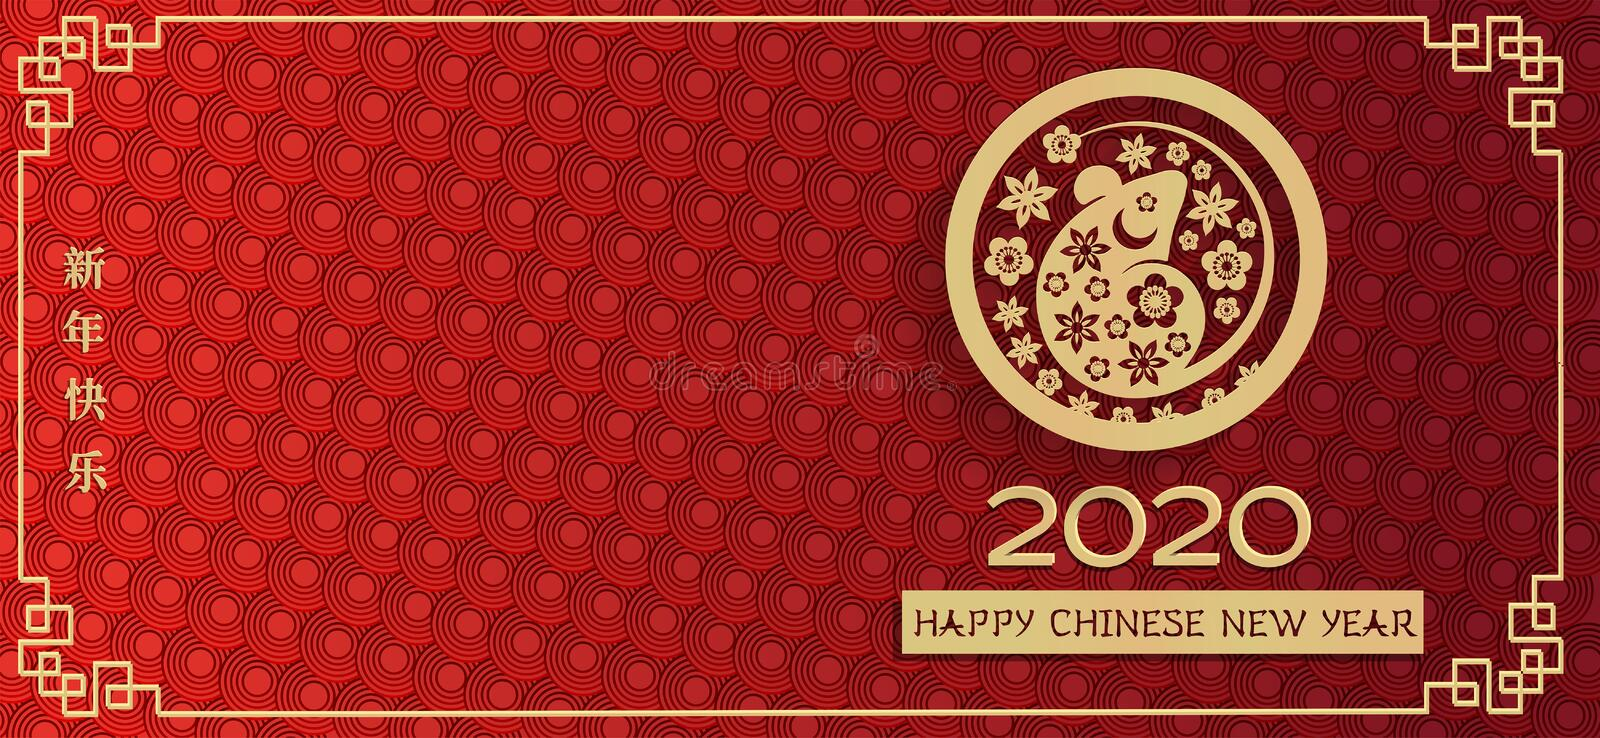 Wide horisontal Luxury festive card for Chinese New Year 2020 with stylized rat, zodiac symbol of 2020 year in golden circle with royalty free stock images